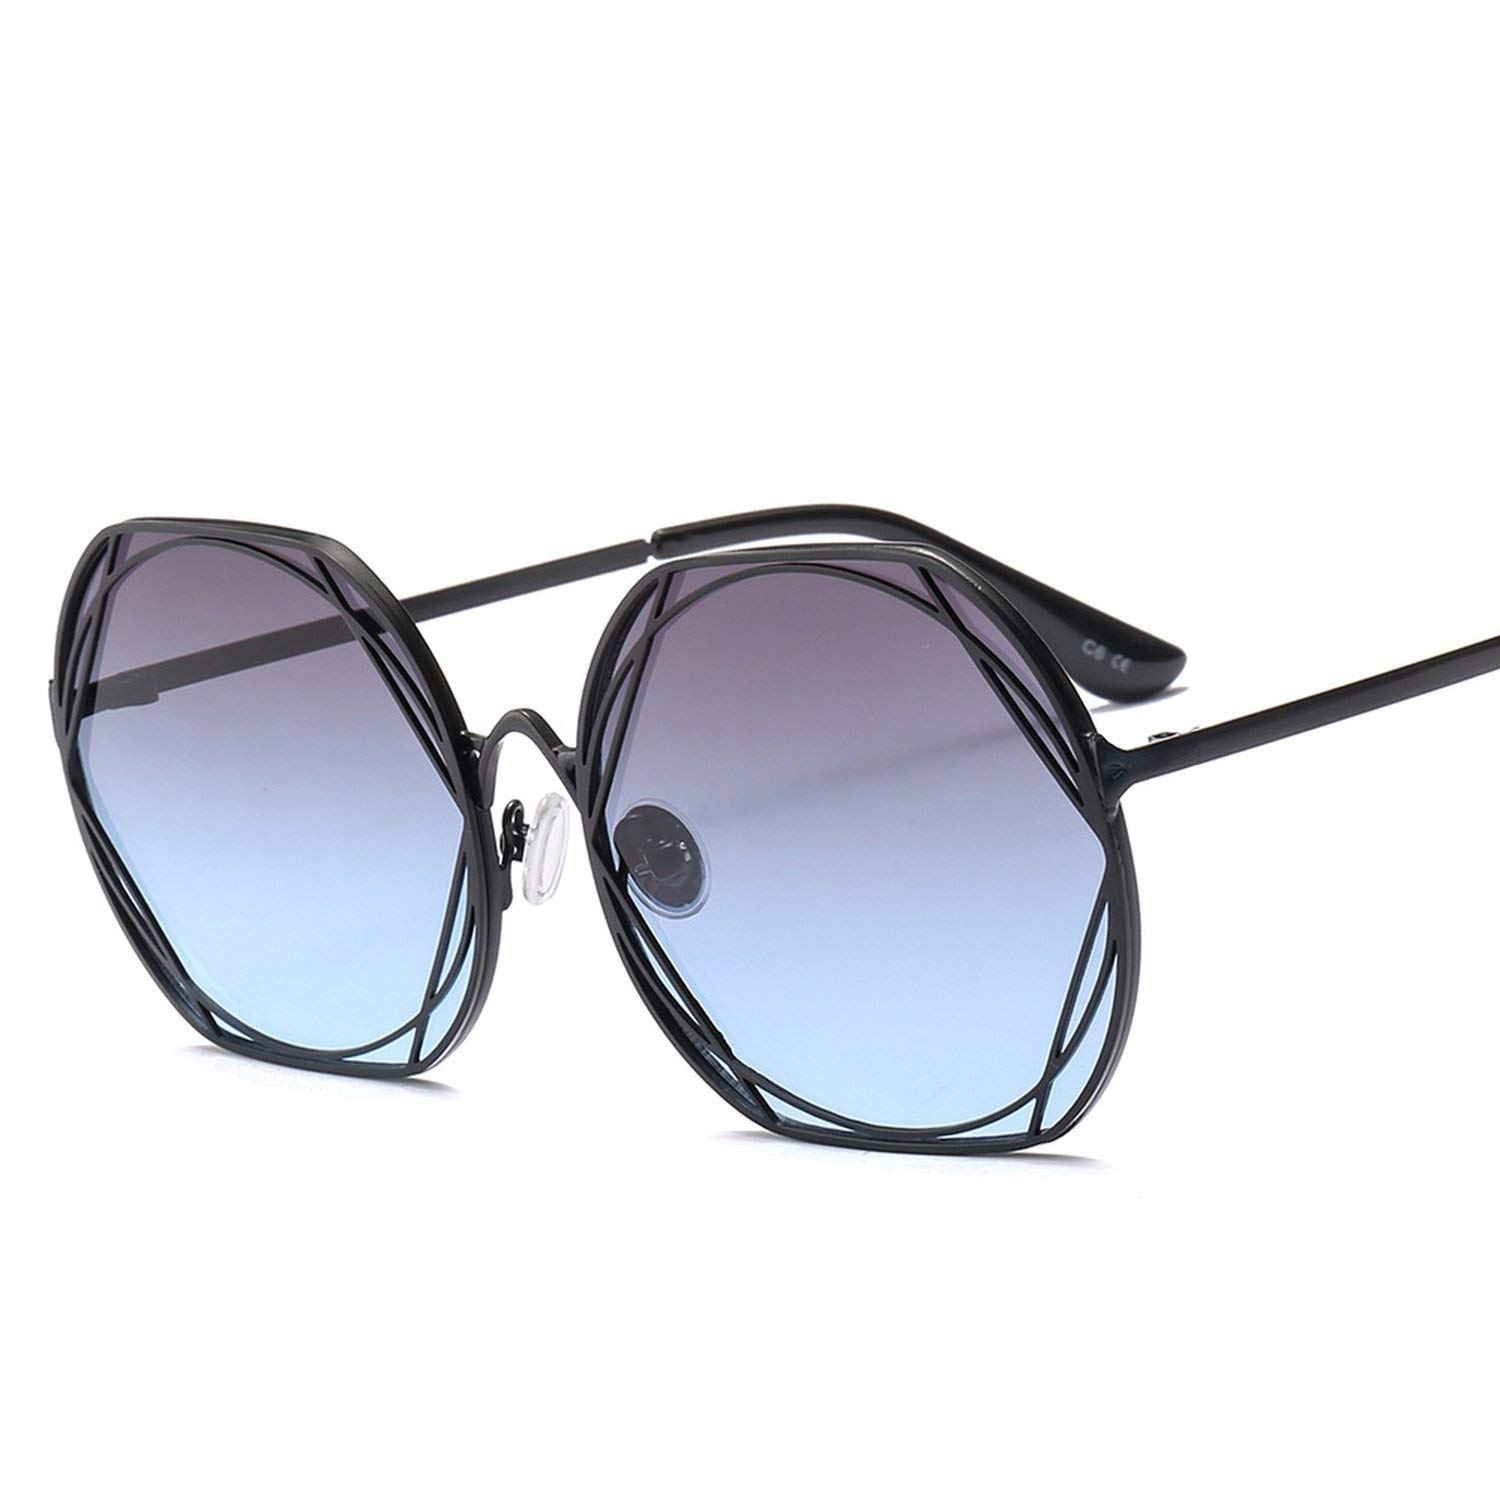 Amazon.com: Metal Frame Vintage Round Sunglasses Women Men ...